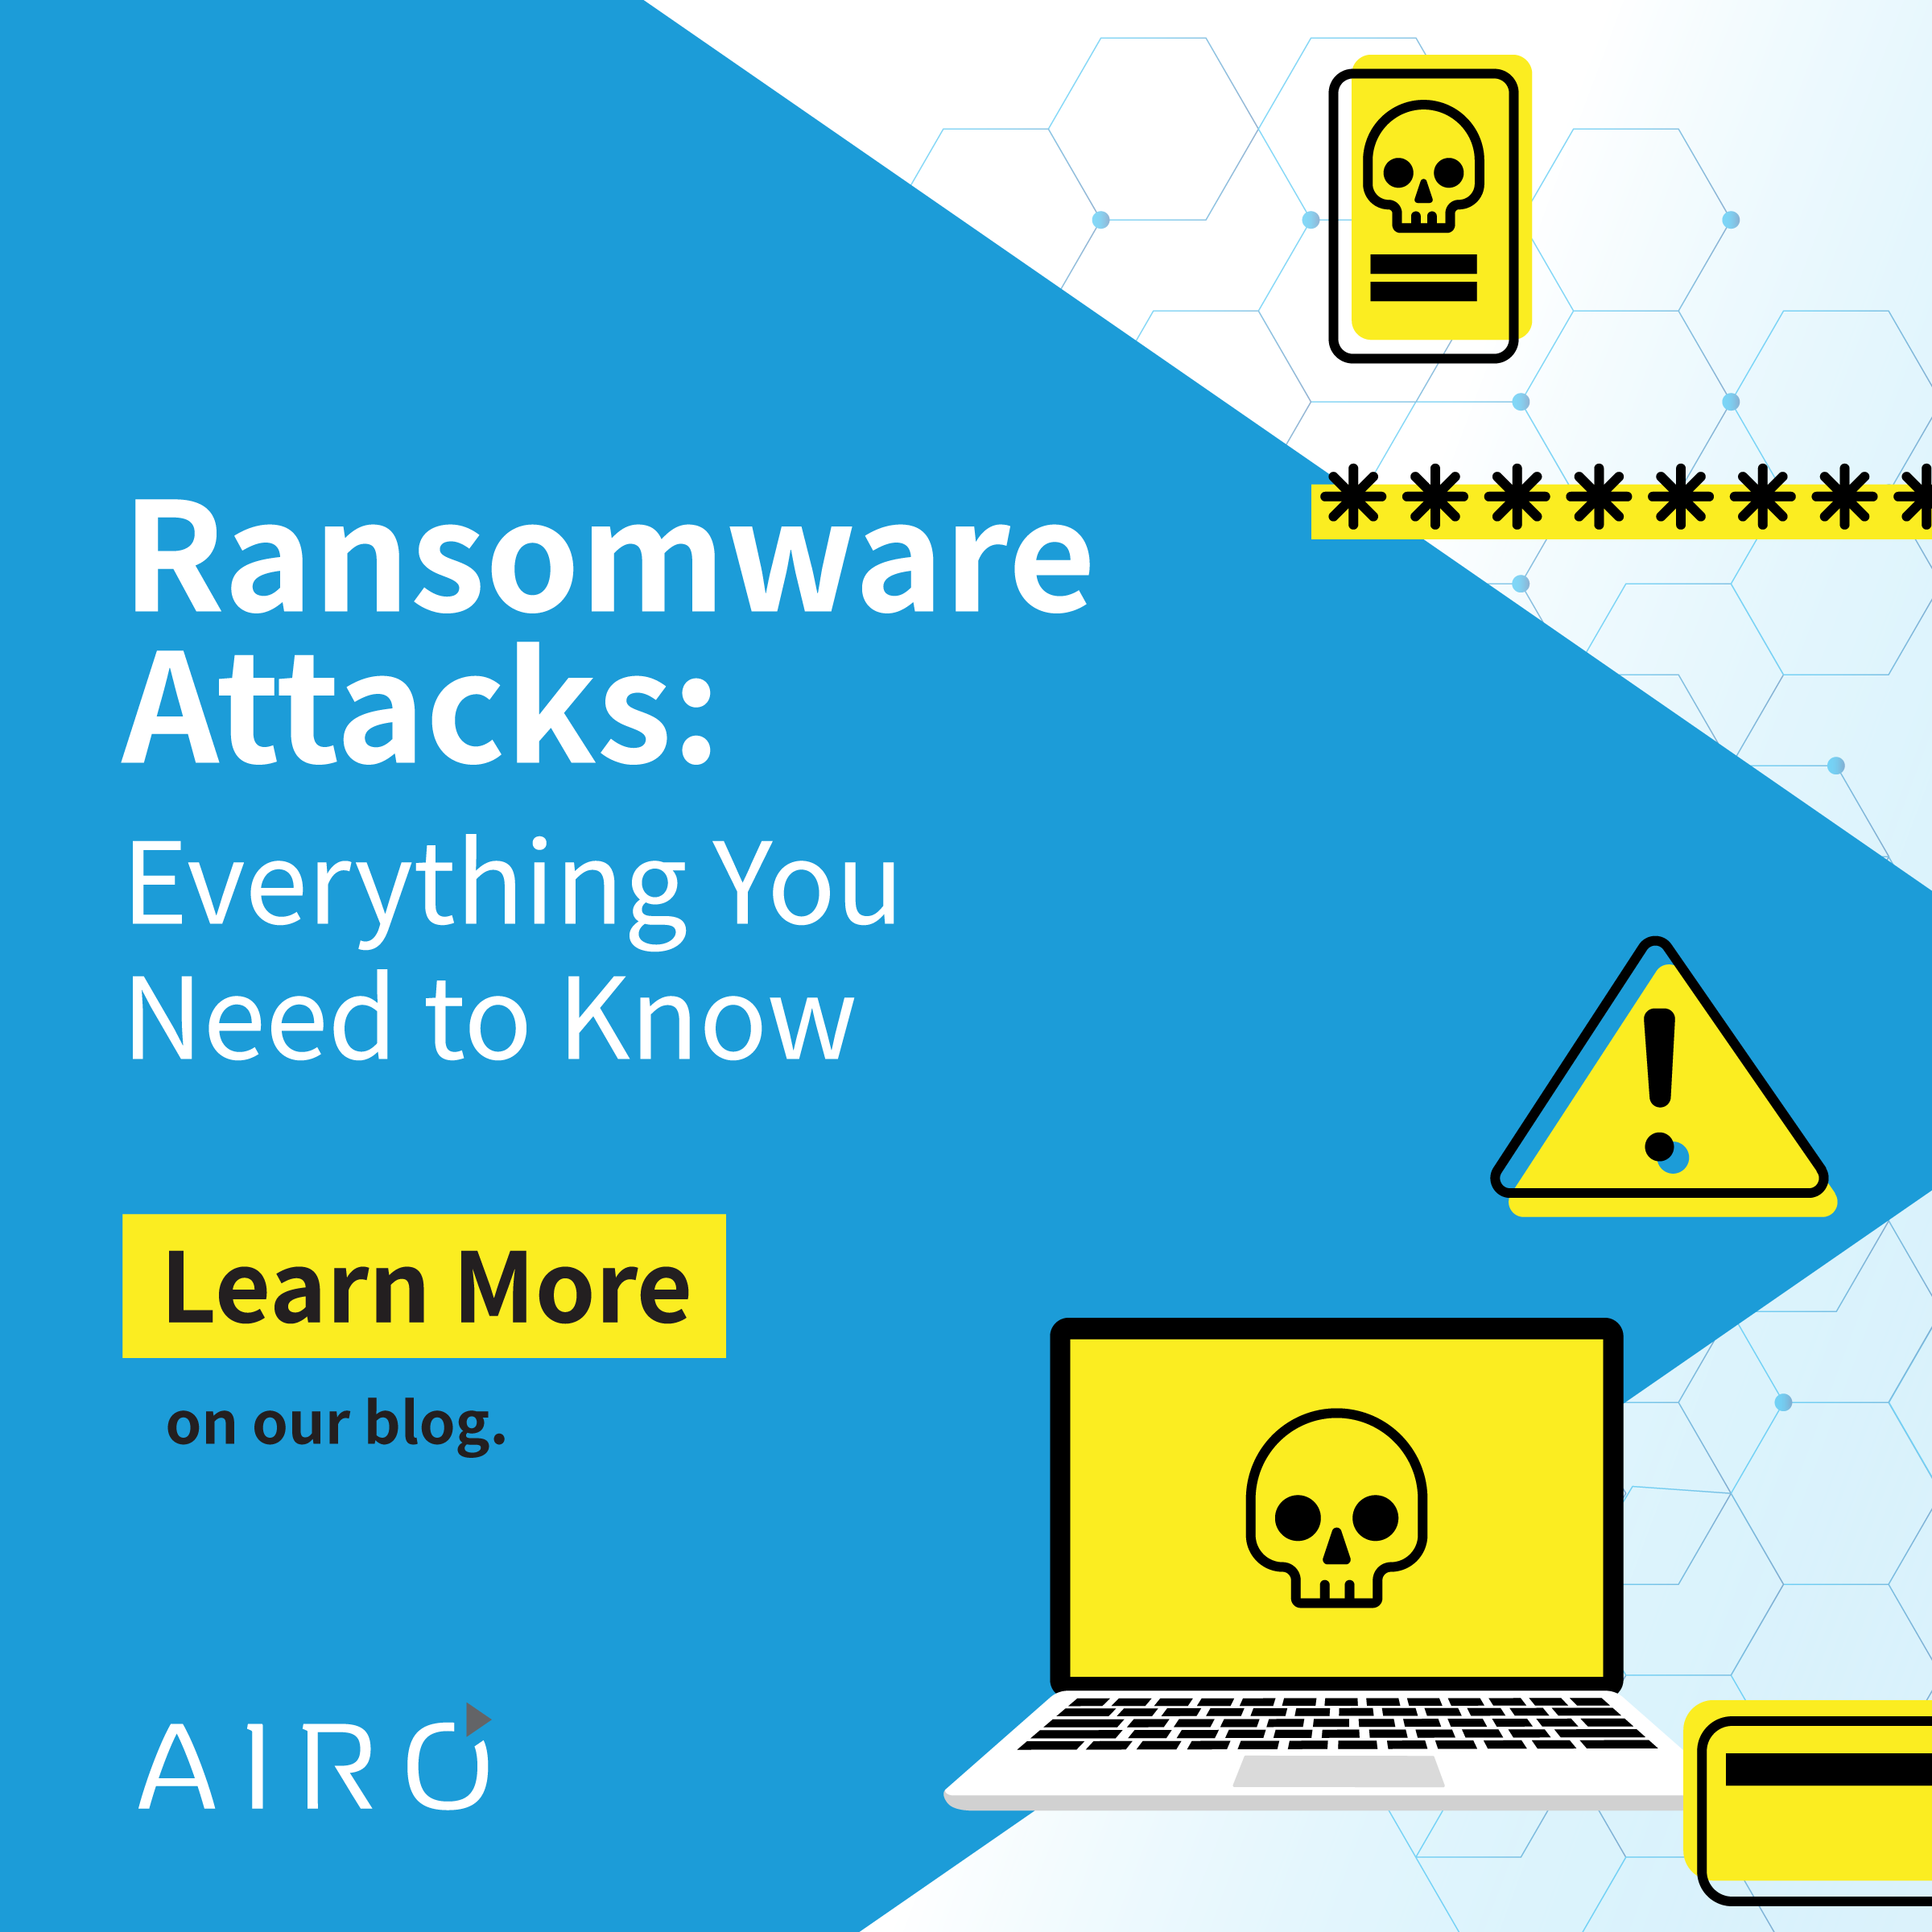 Ransomware Attacks: Everything You Need to Know